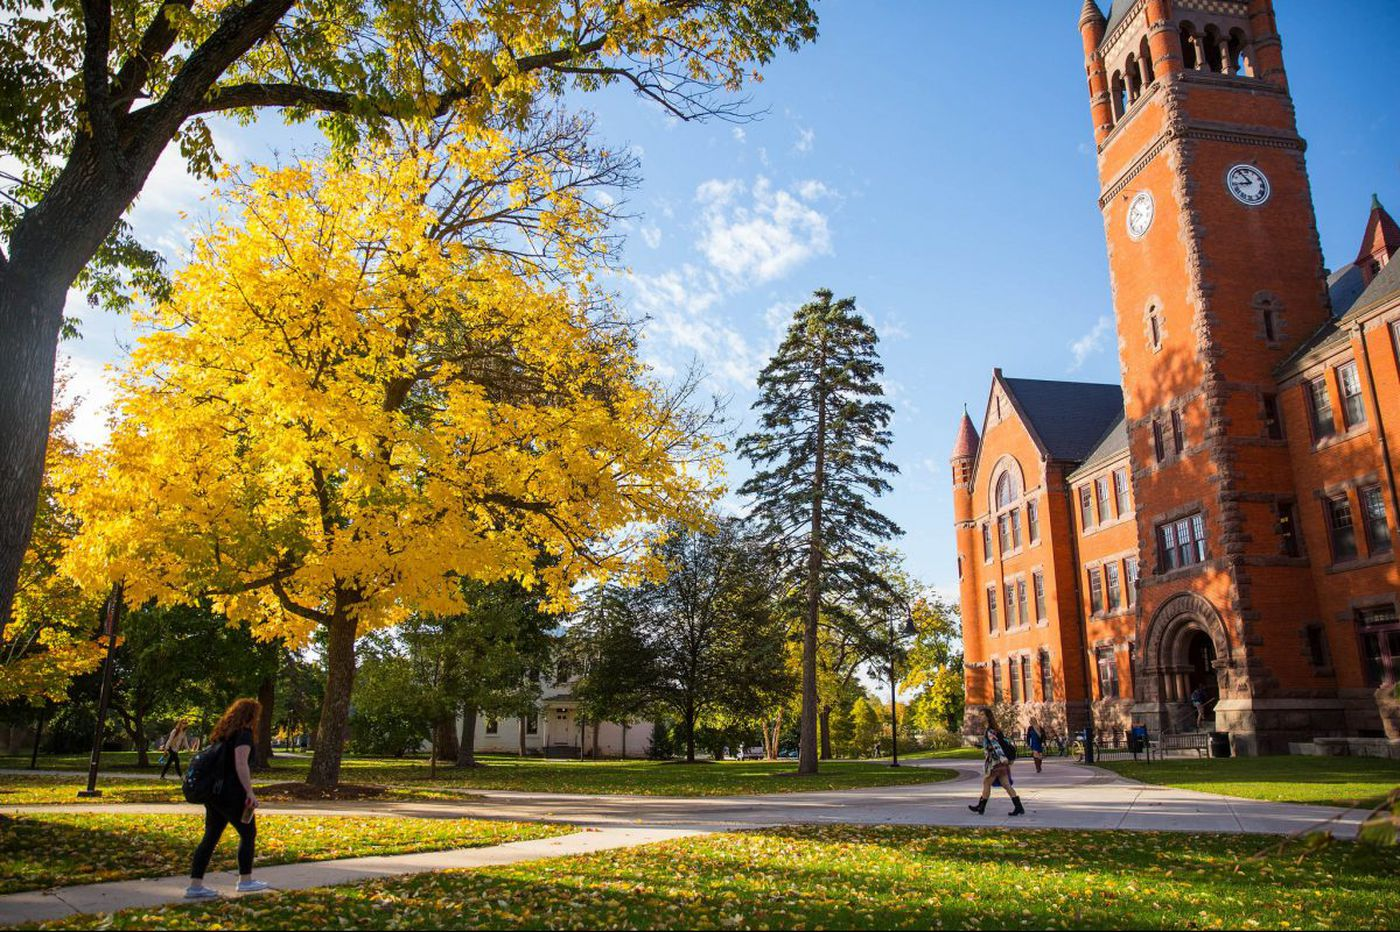 Liberal arts education prepares you for life in a rapidly changing world